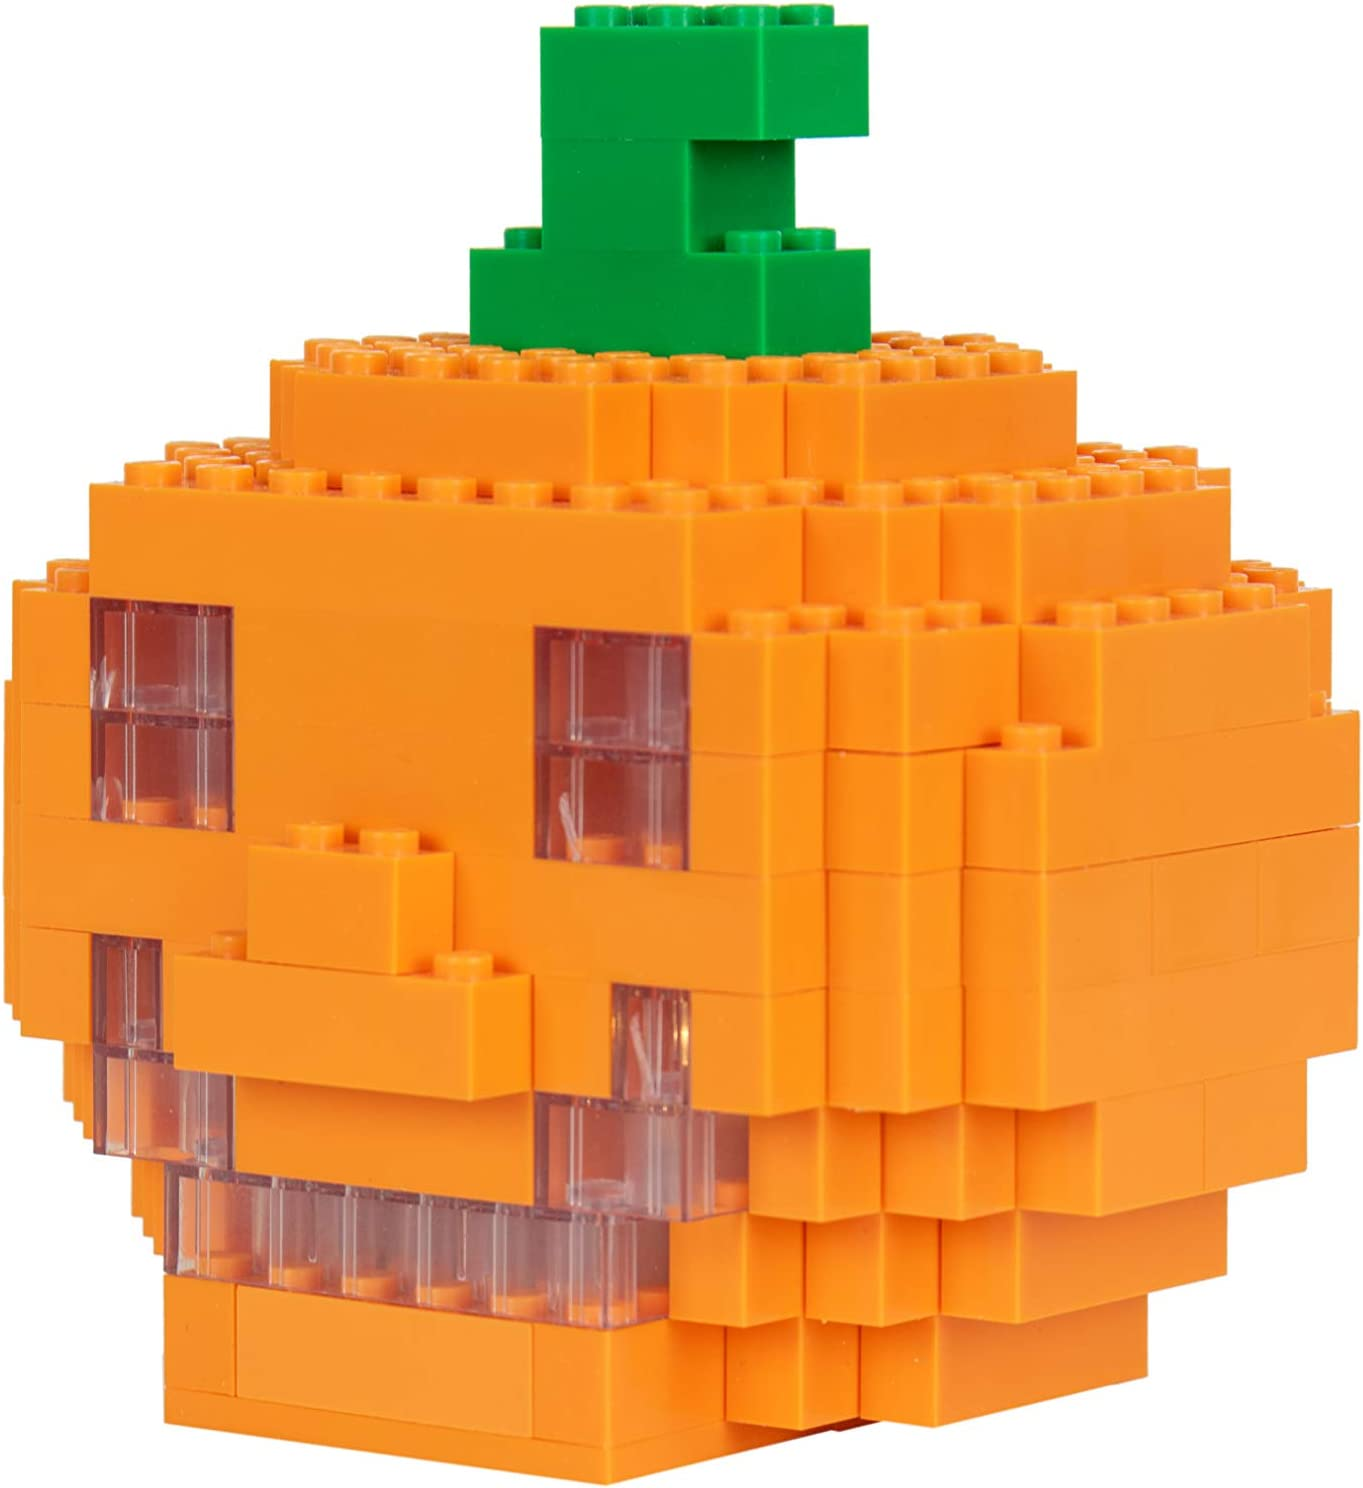 06 - Jack O Lantern w//Light Trick or Treat Construction Toy Stem Learning Create Grow More Compatible with All Major Building Brands Halloween Building Brick Parent Pumpkin and Ghosts